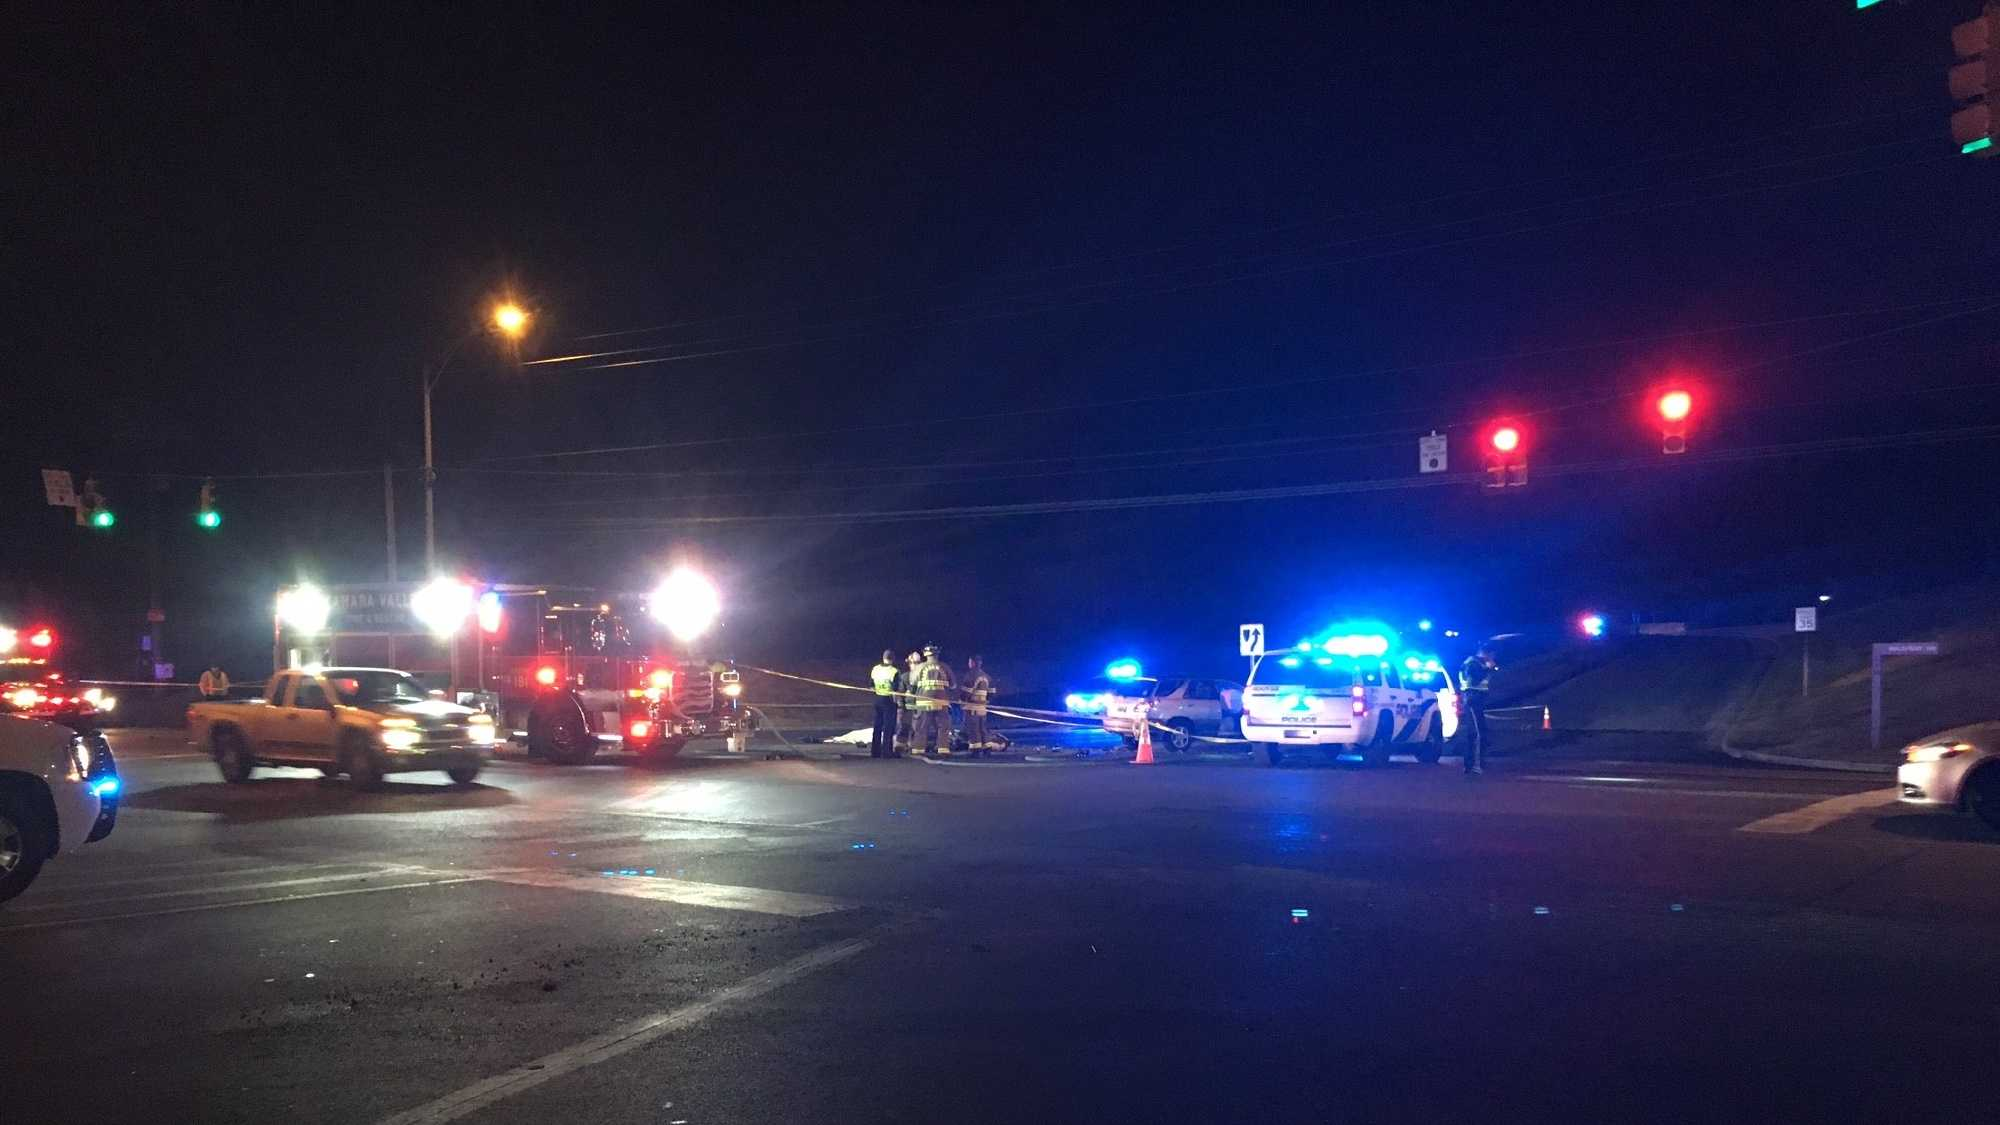 Hoover police and the Shelby County Sheriff's Office are investigating a fatal motorcycle crash Wednesday night. The crash happened just before 6:30 p.m. on Alabama Highway 119 at the intersection of Brook Highland Parkway.